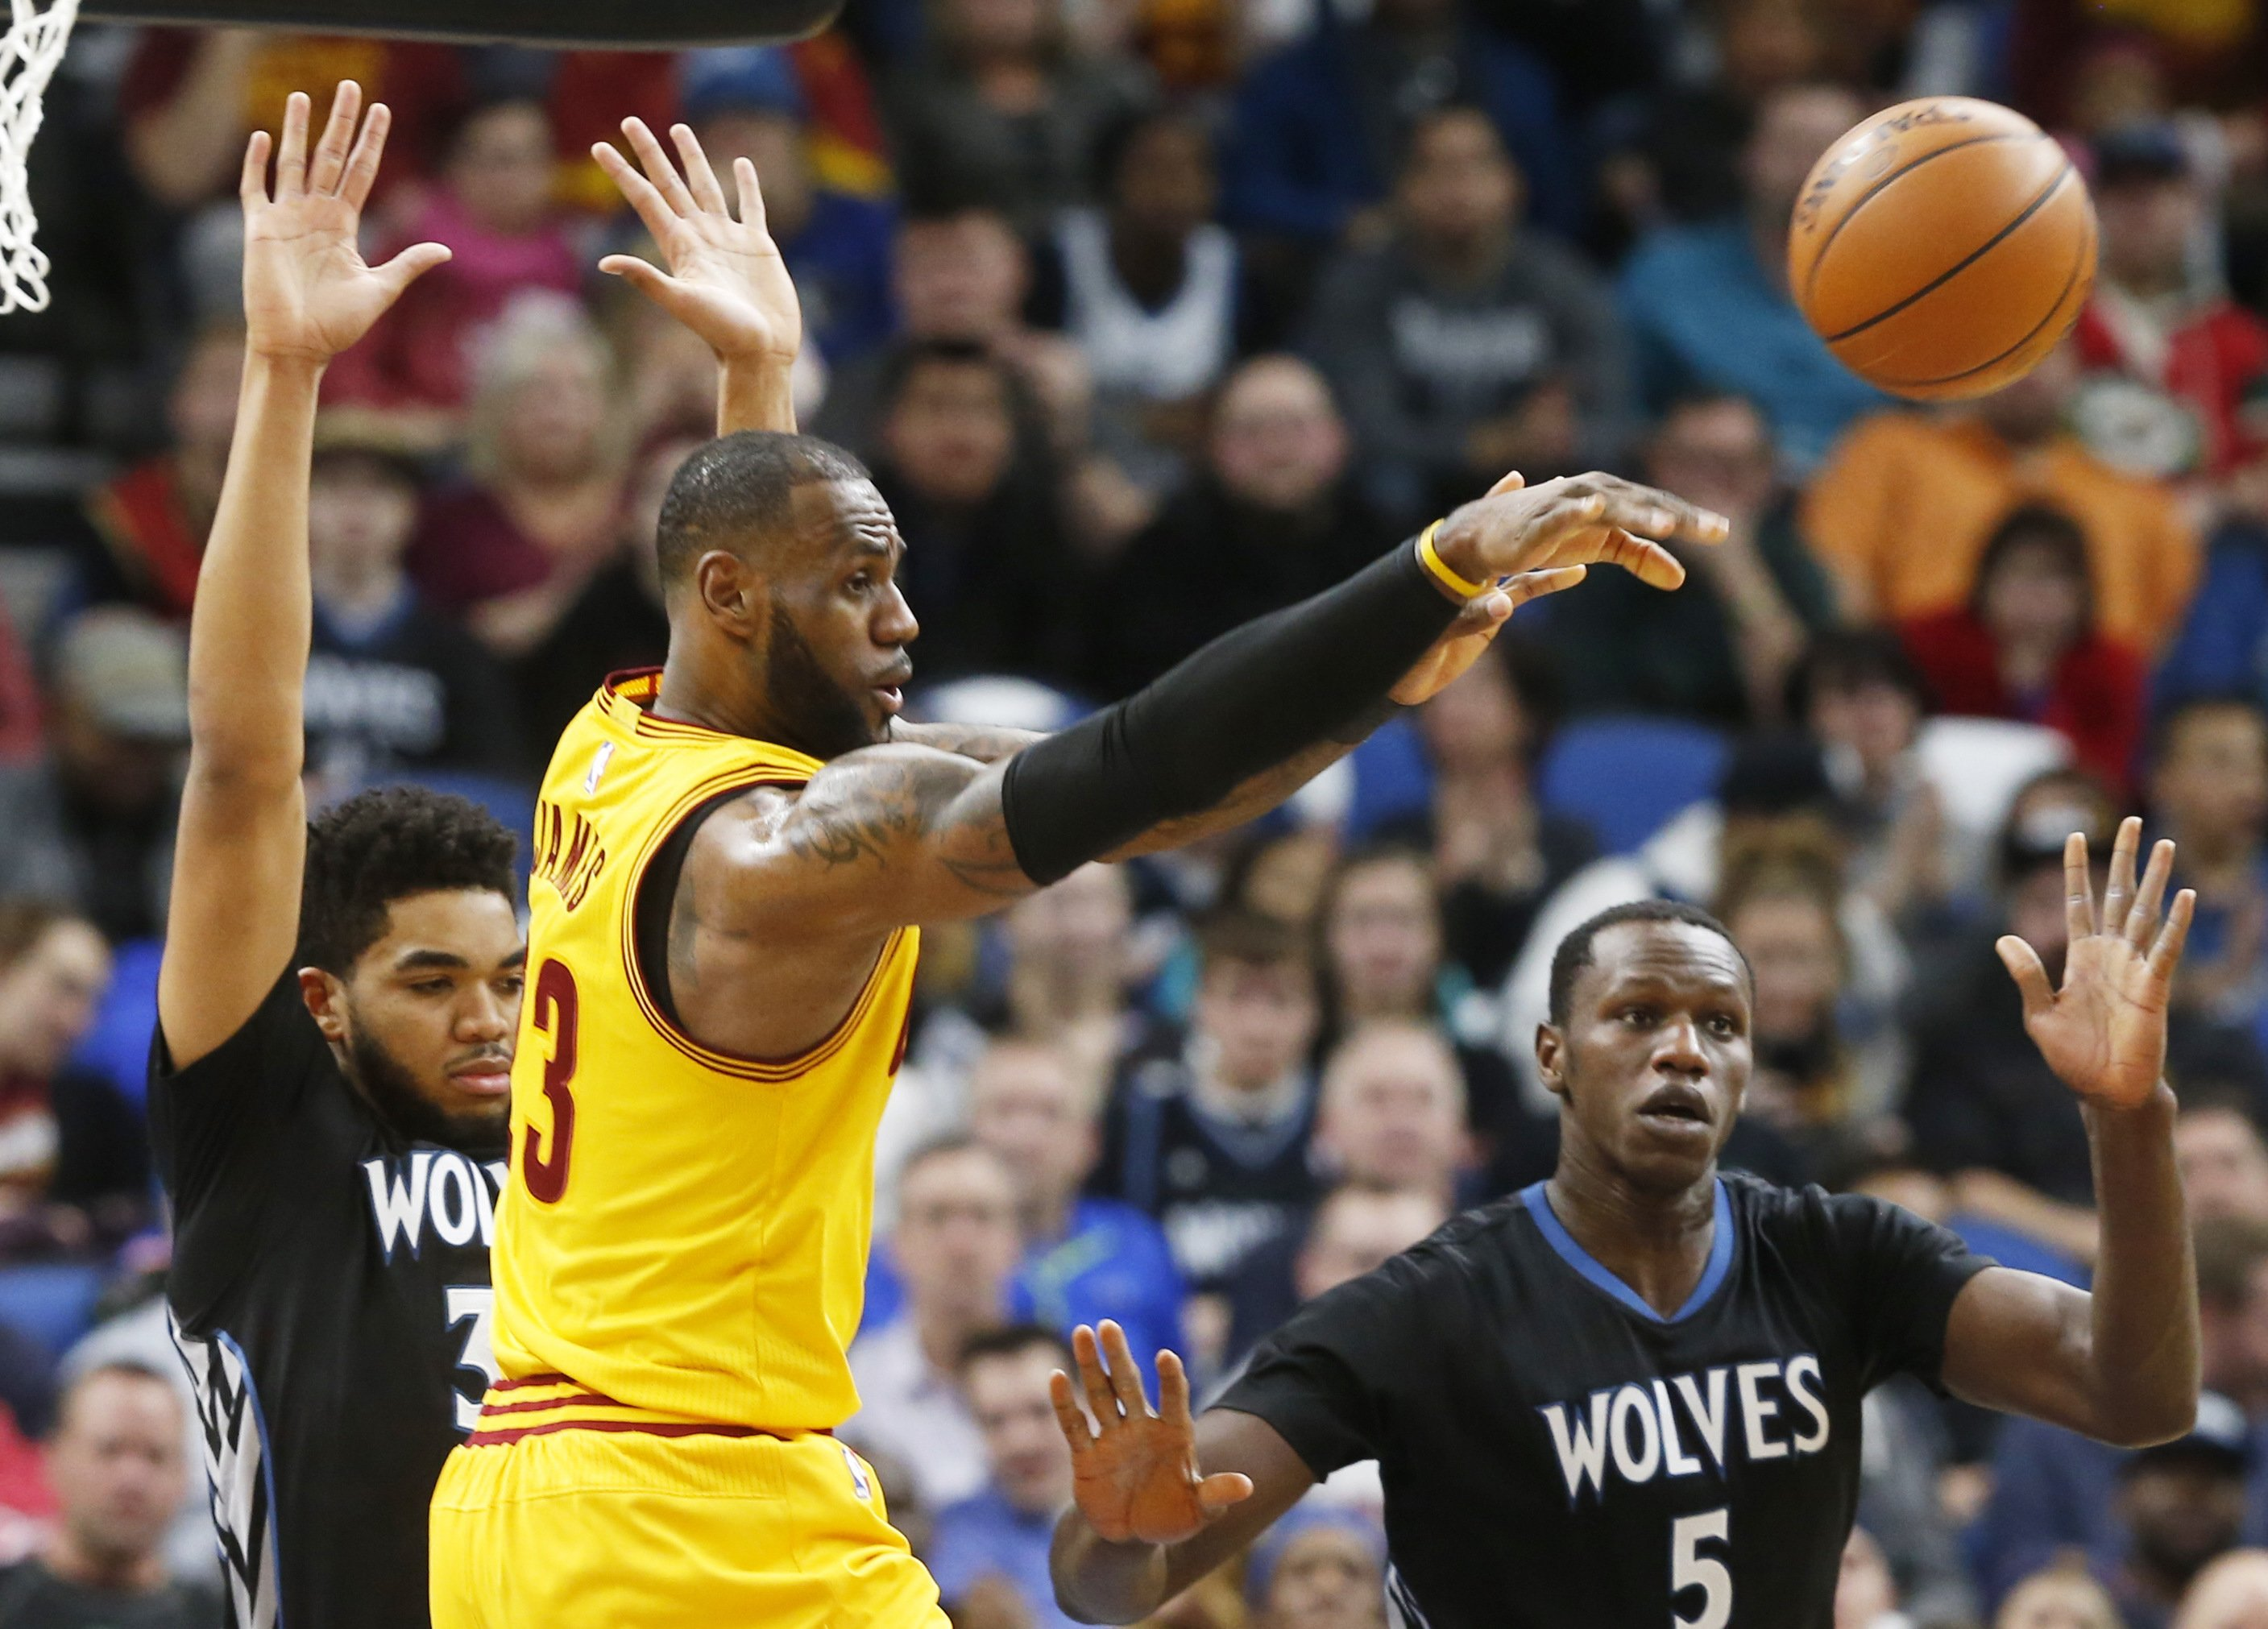 After losing Love for weeks, LeBron and Cavs beat Wolves